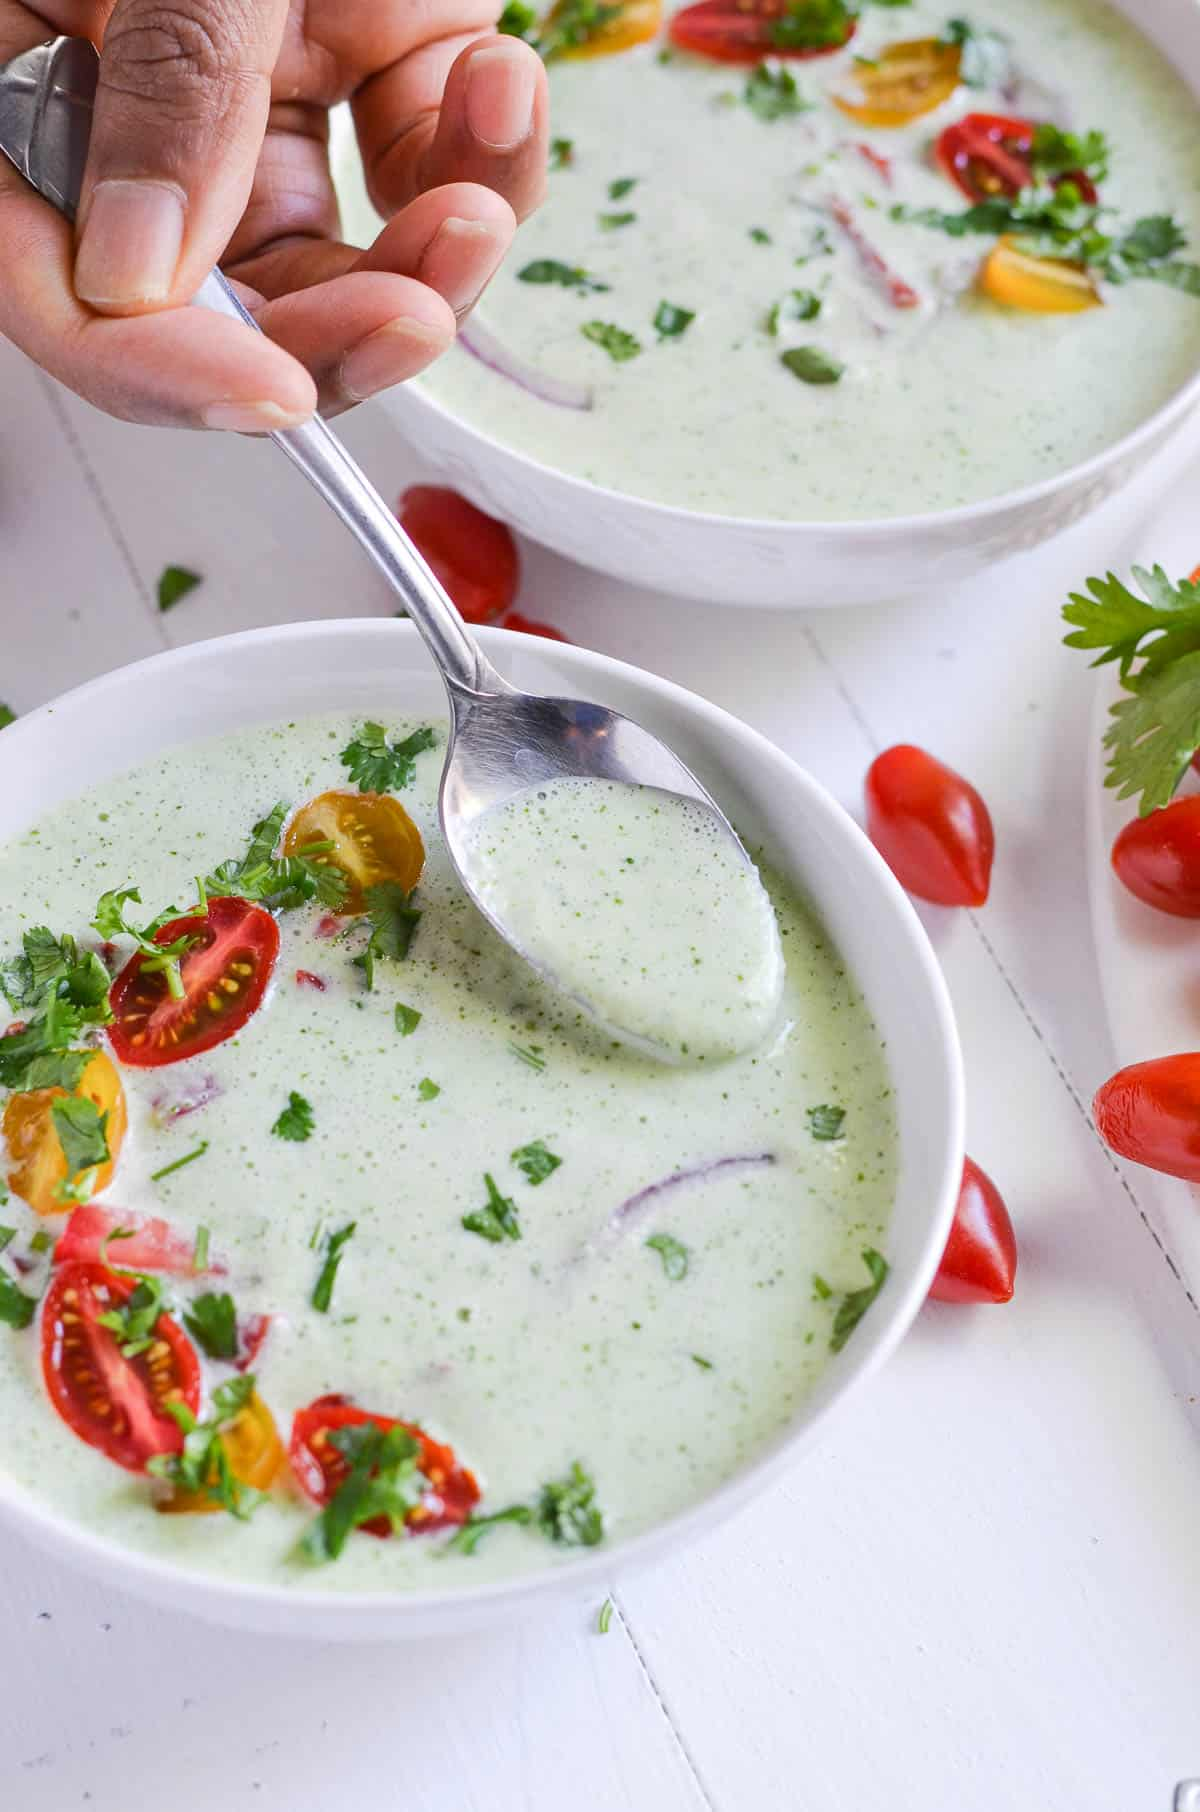 A spoonful cucumber soup is showcased to show the texture.